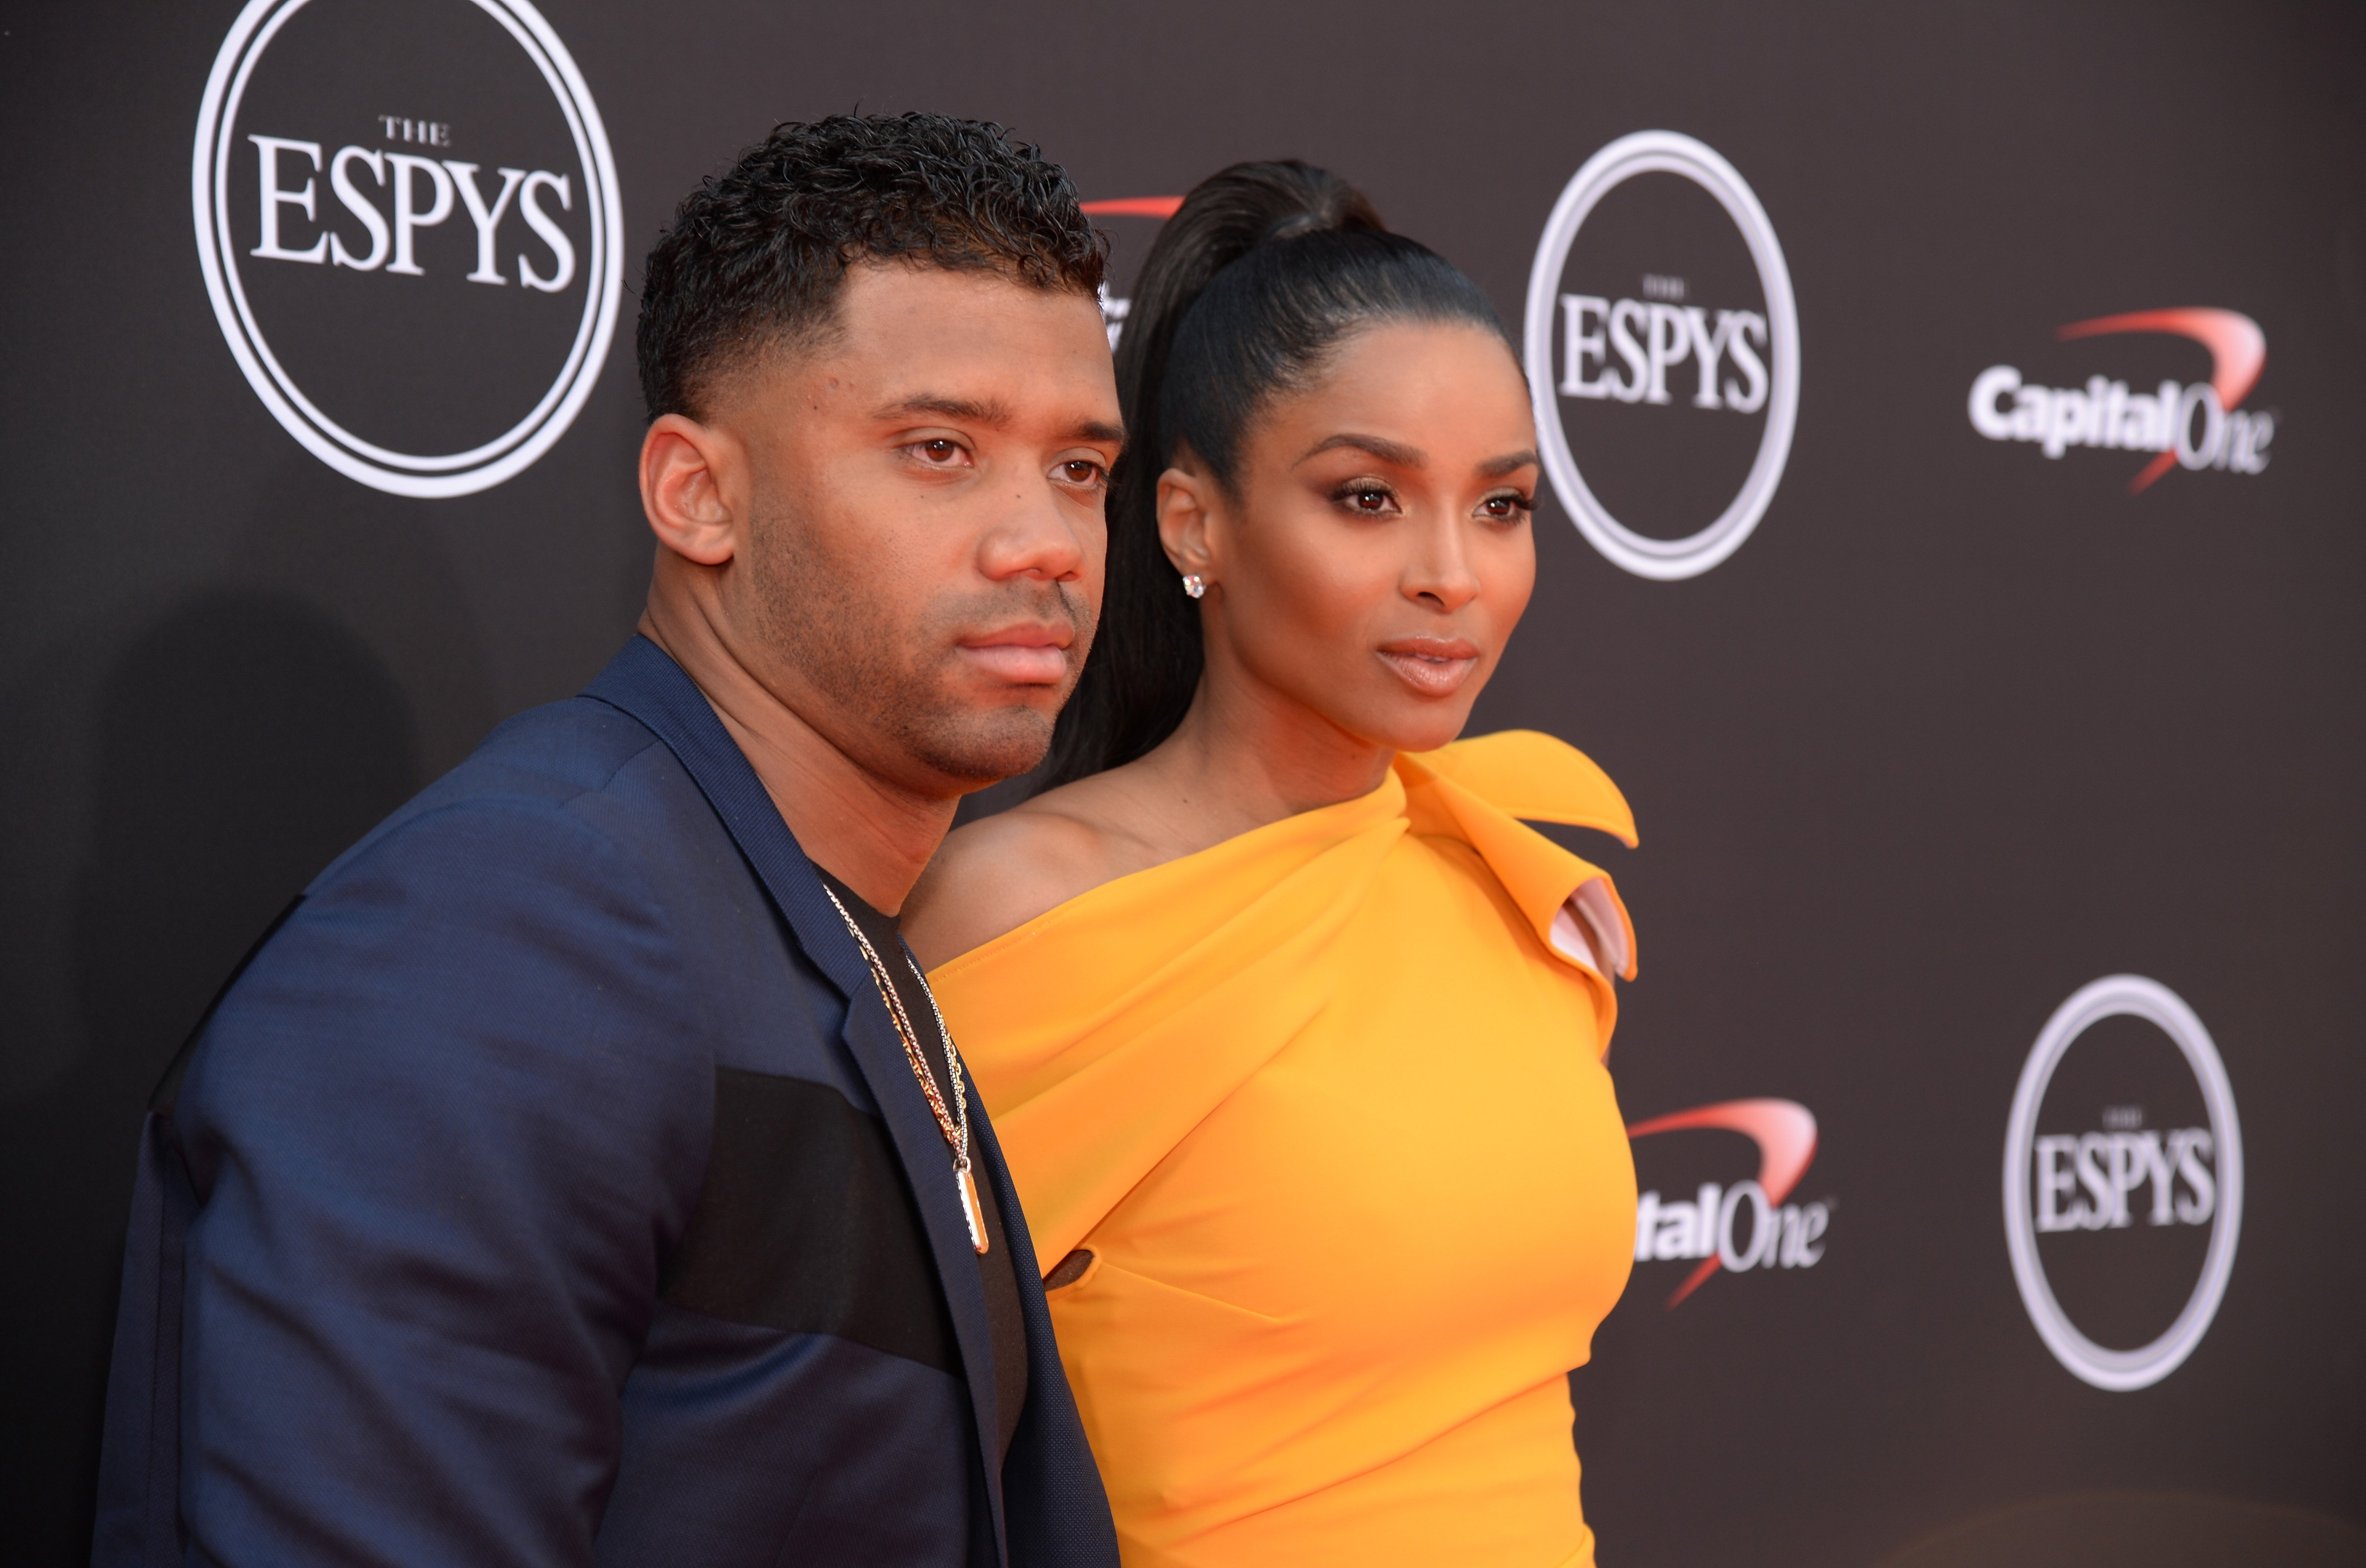 Ciara and husband Russell Wilson at the 2018 ESPY Awards red carpet. | Source: Getty Images